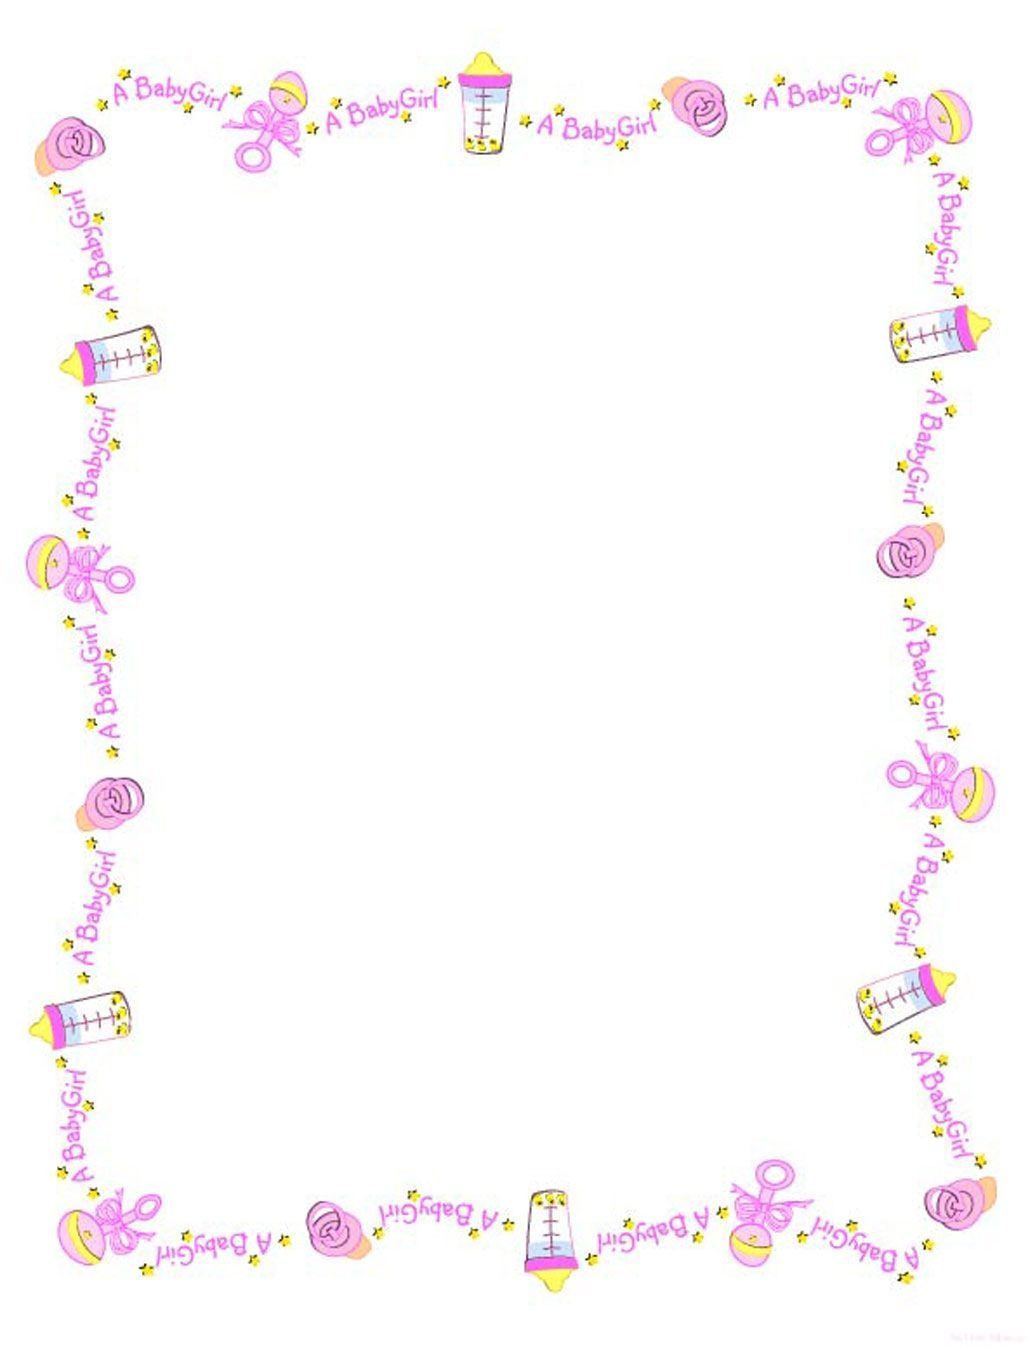 Baby Girl Borders Clipart - Clipart Kid | Projects | Baby Frame - Free Printable Baby Borders For Paper